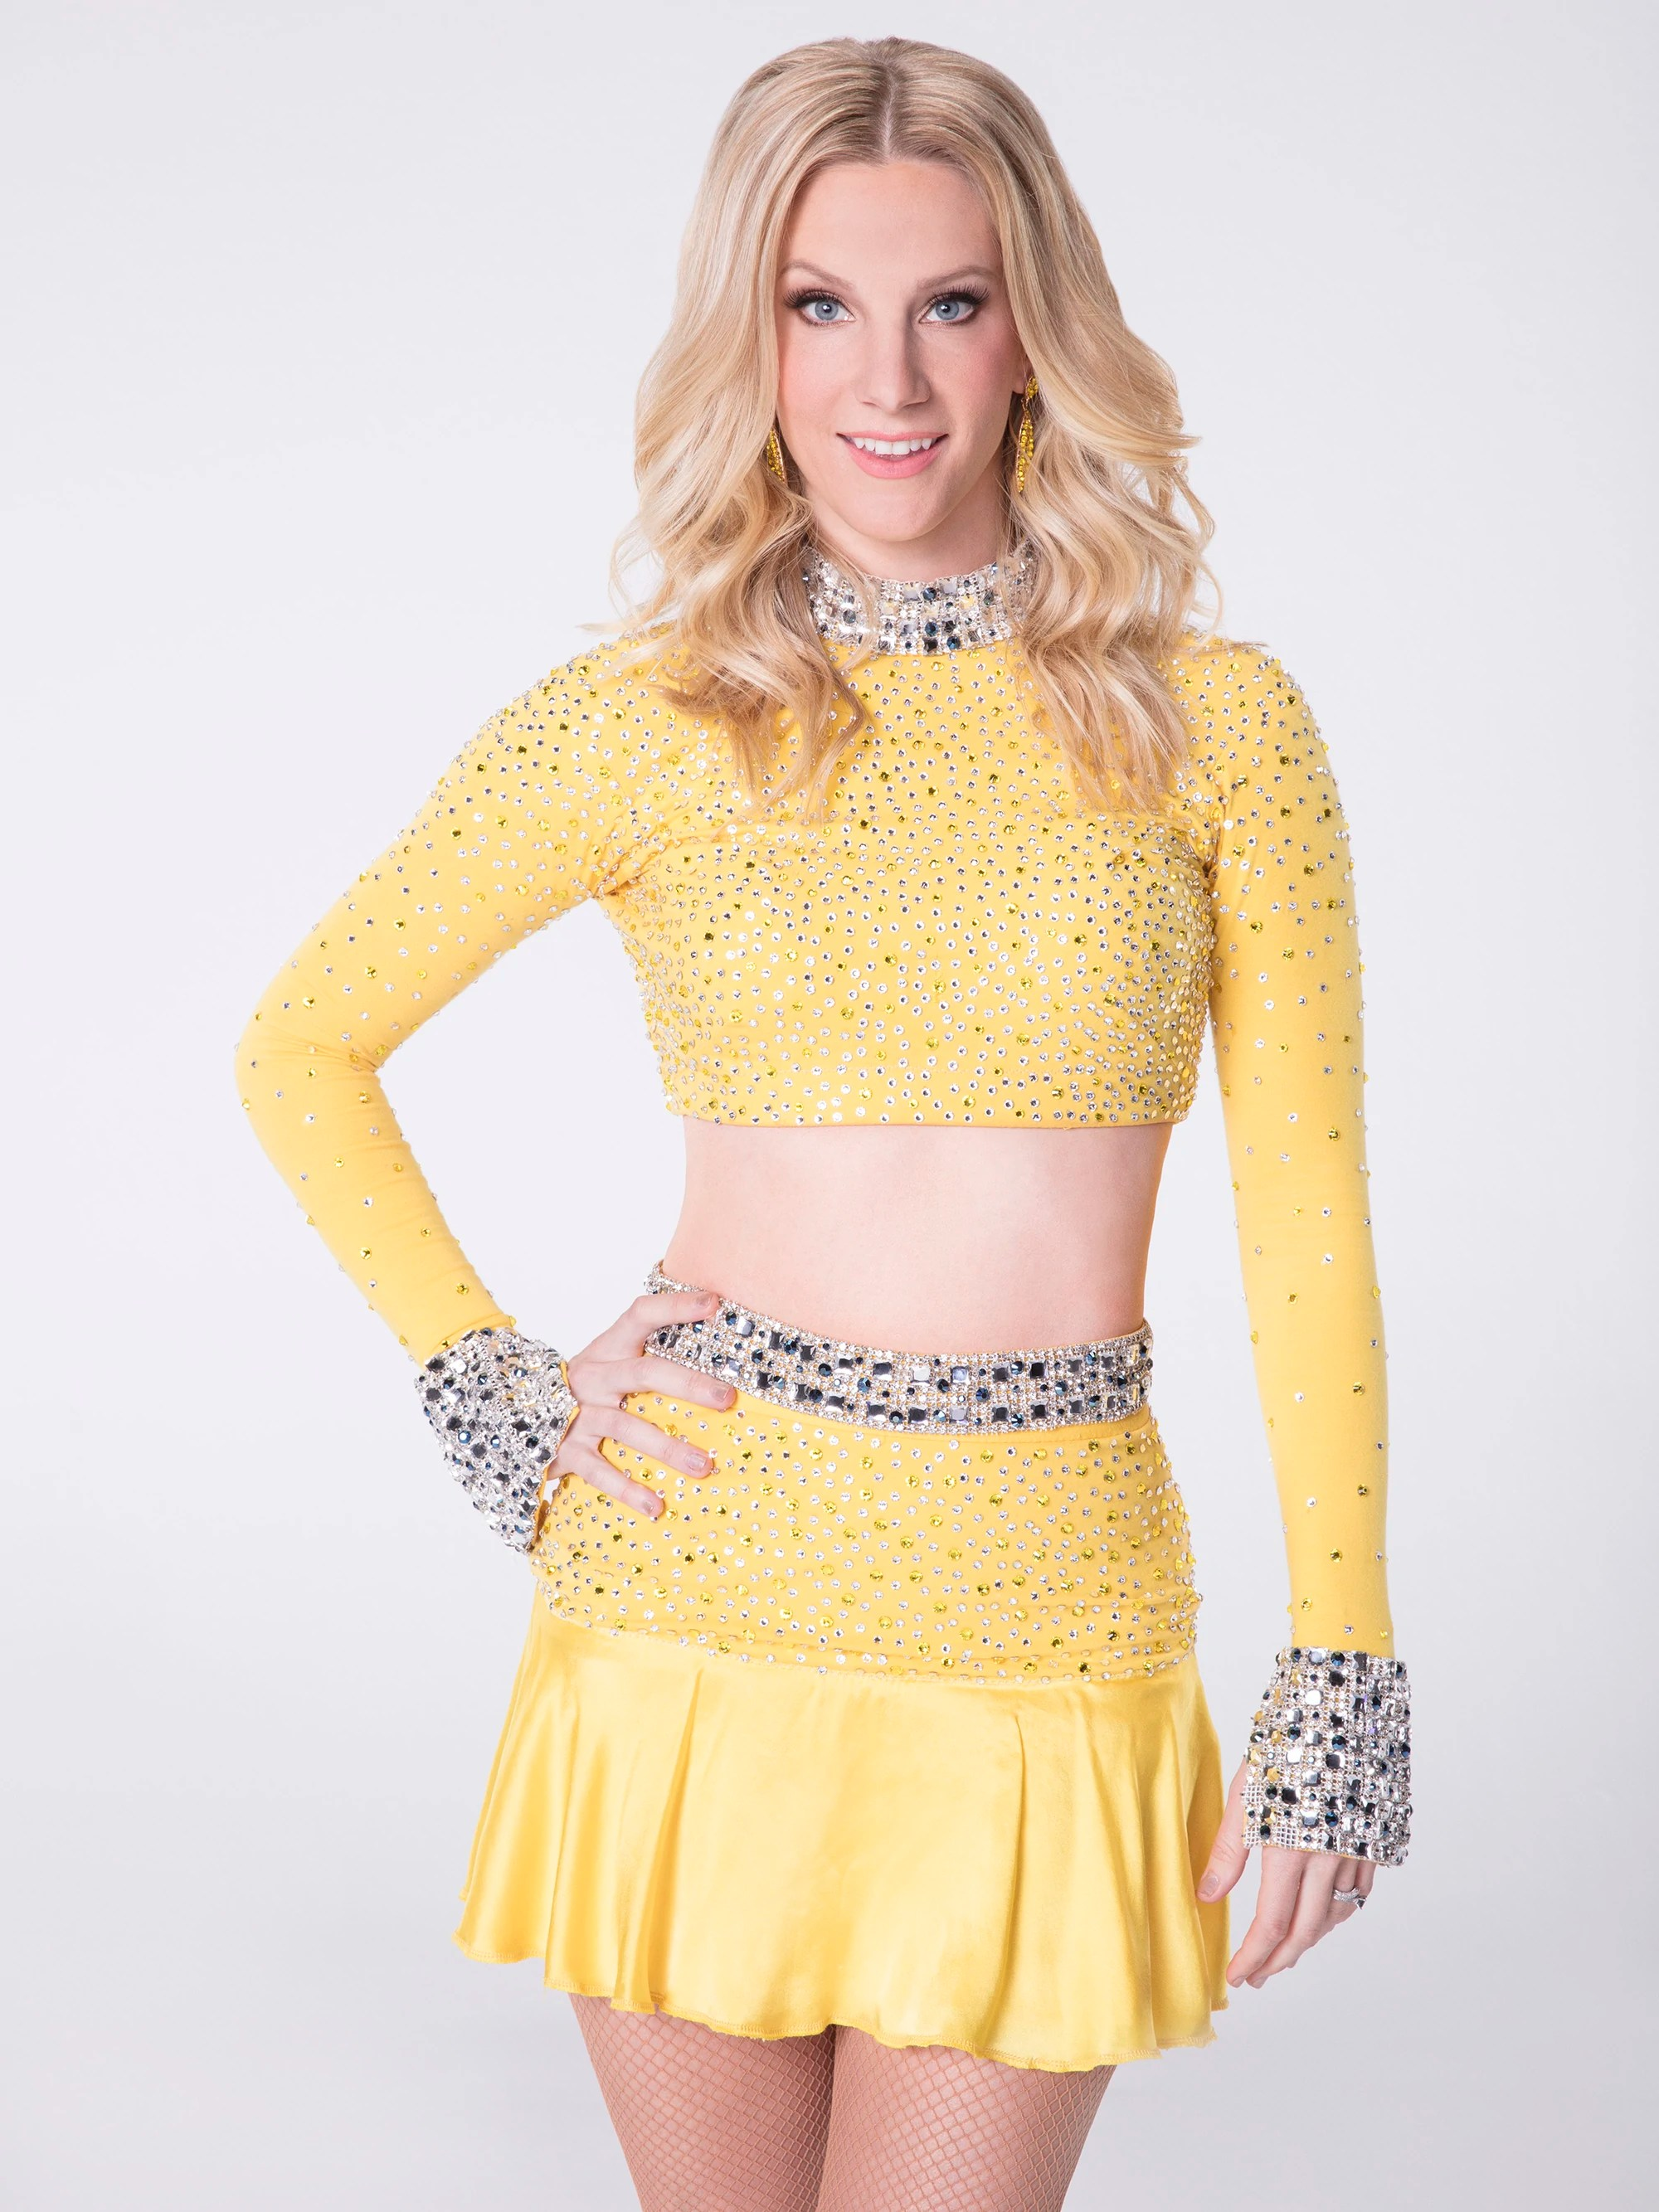 Heather Morris Dancing With The Stars Wiki Fandom